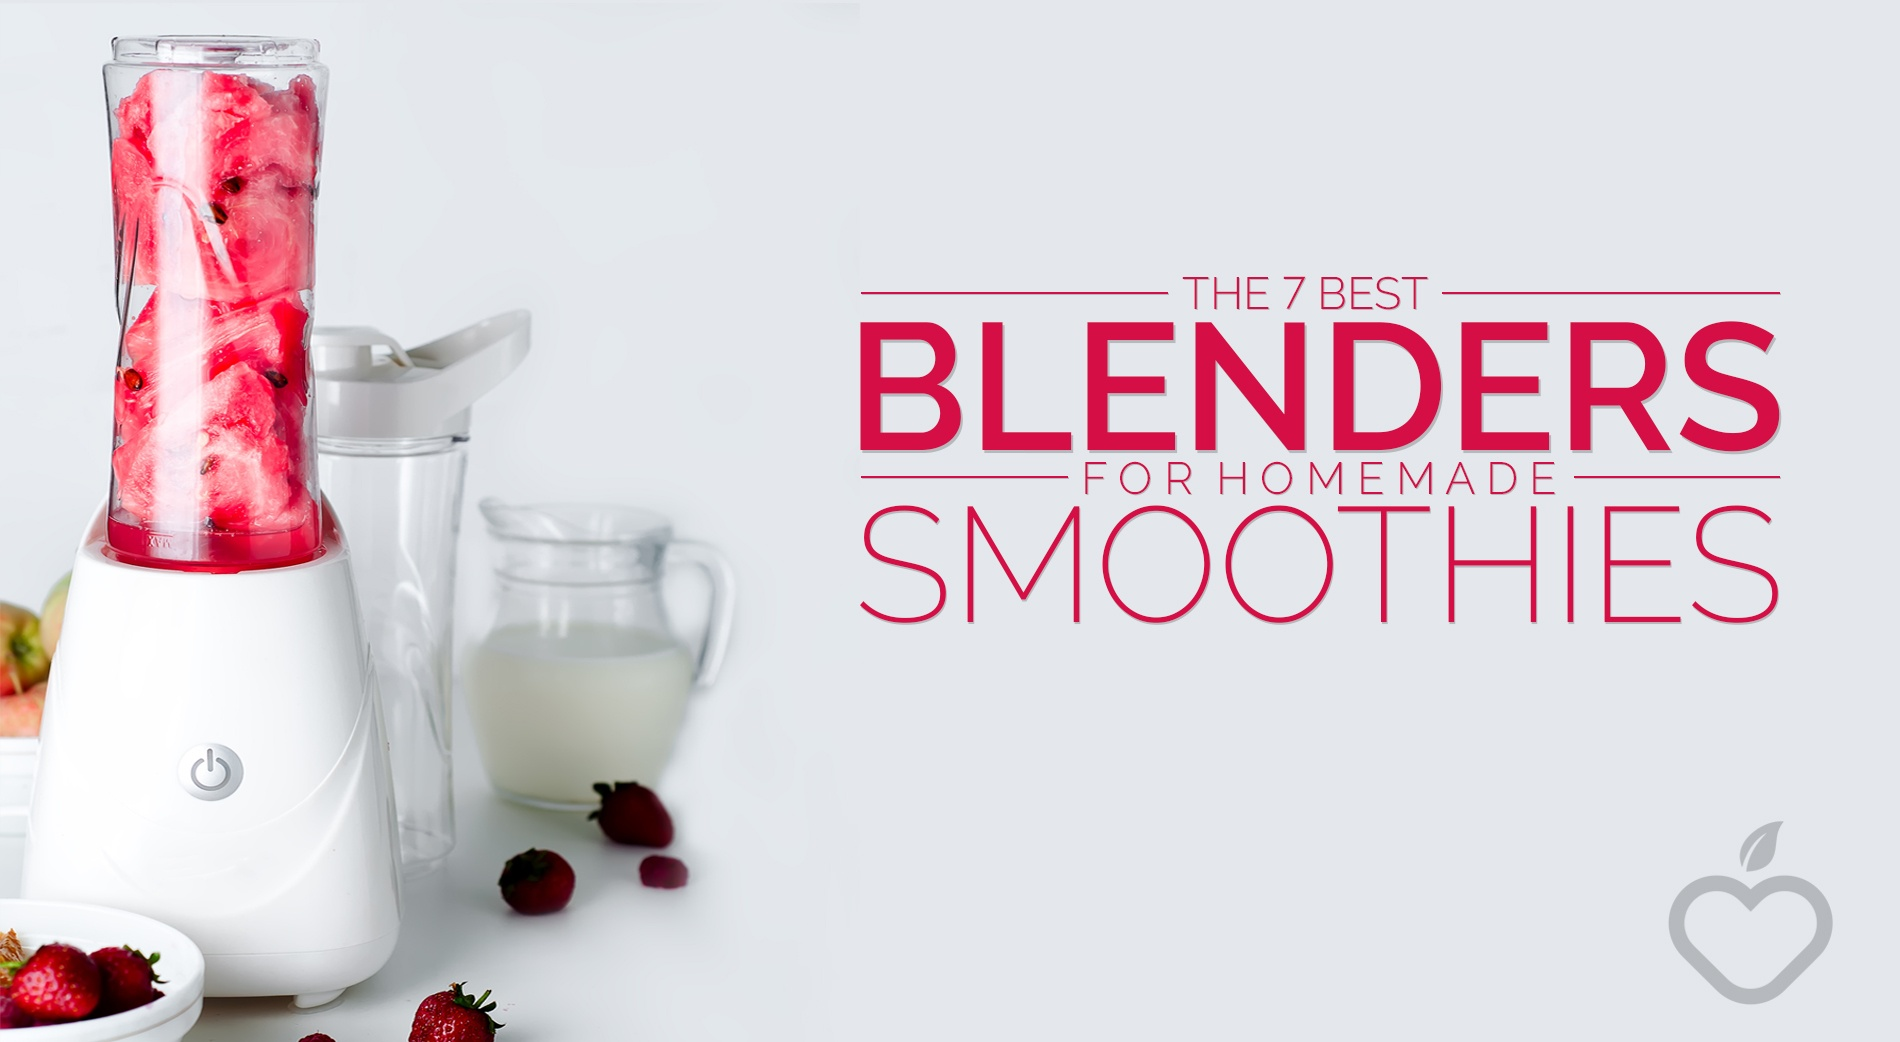 Blenders Image Design 1 - The 7 Best Blenders For Homemade Smoothies